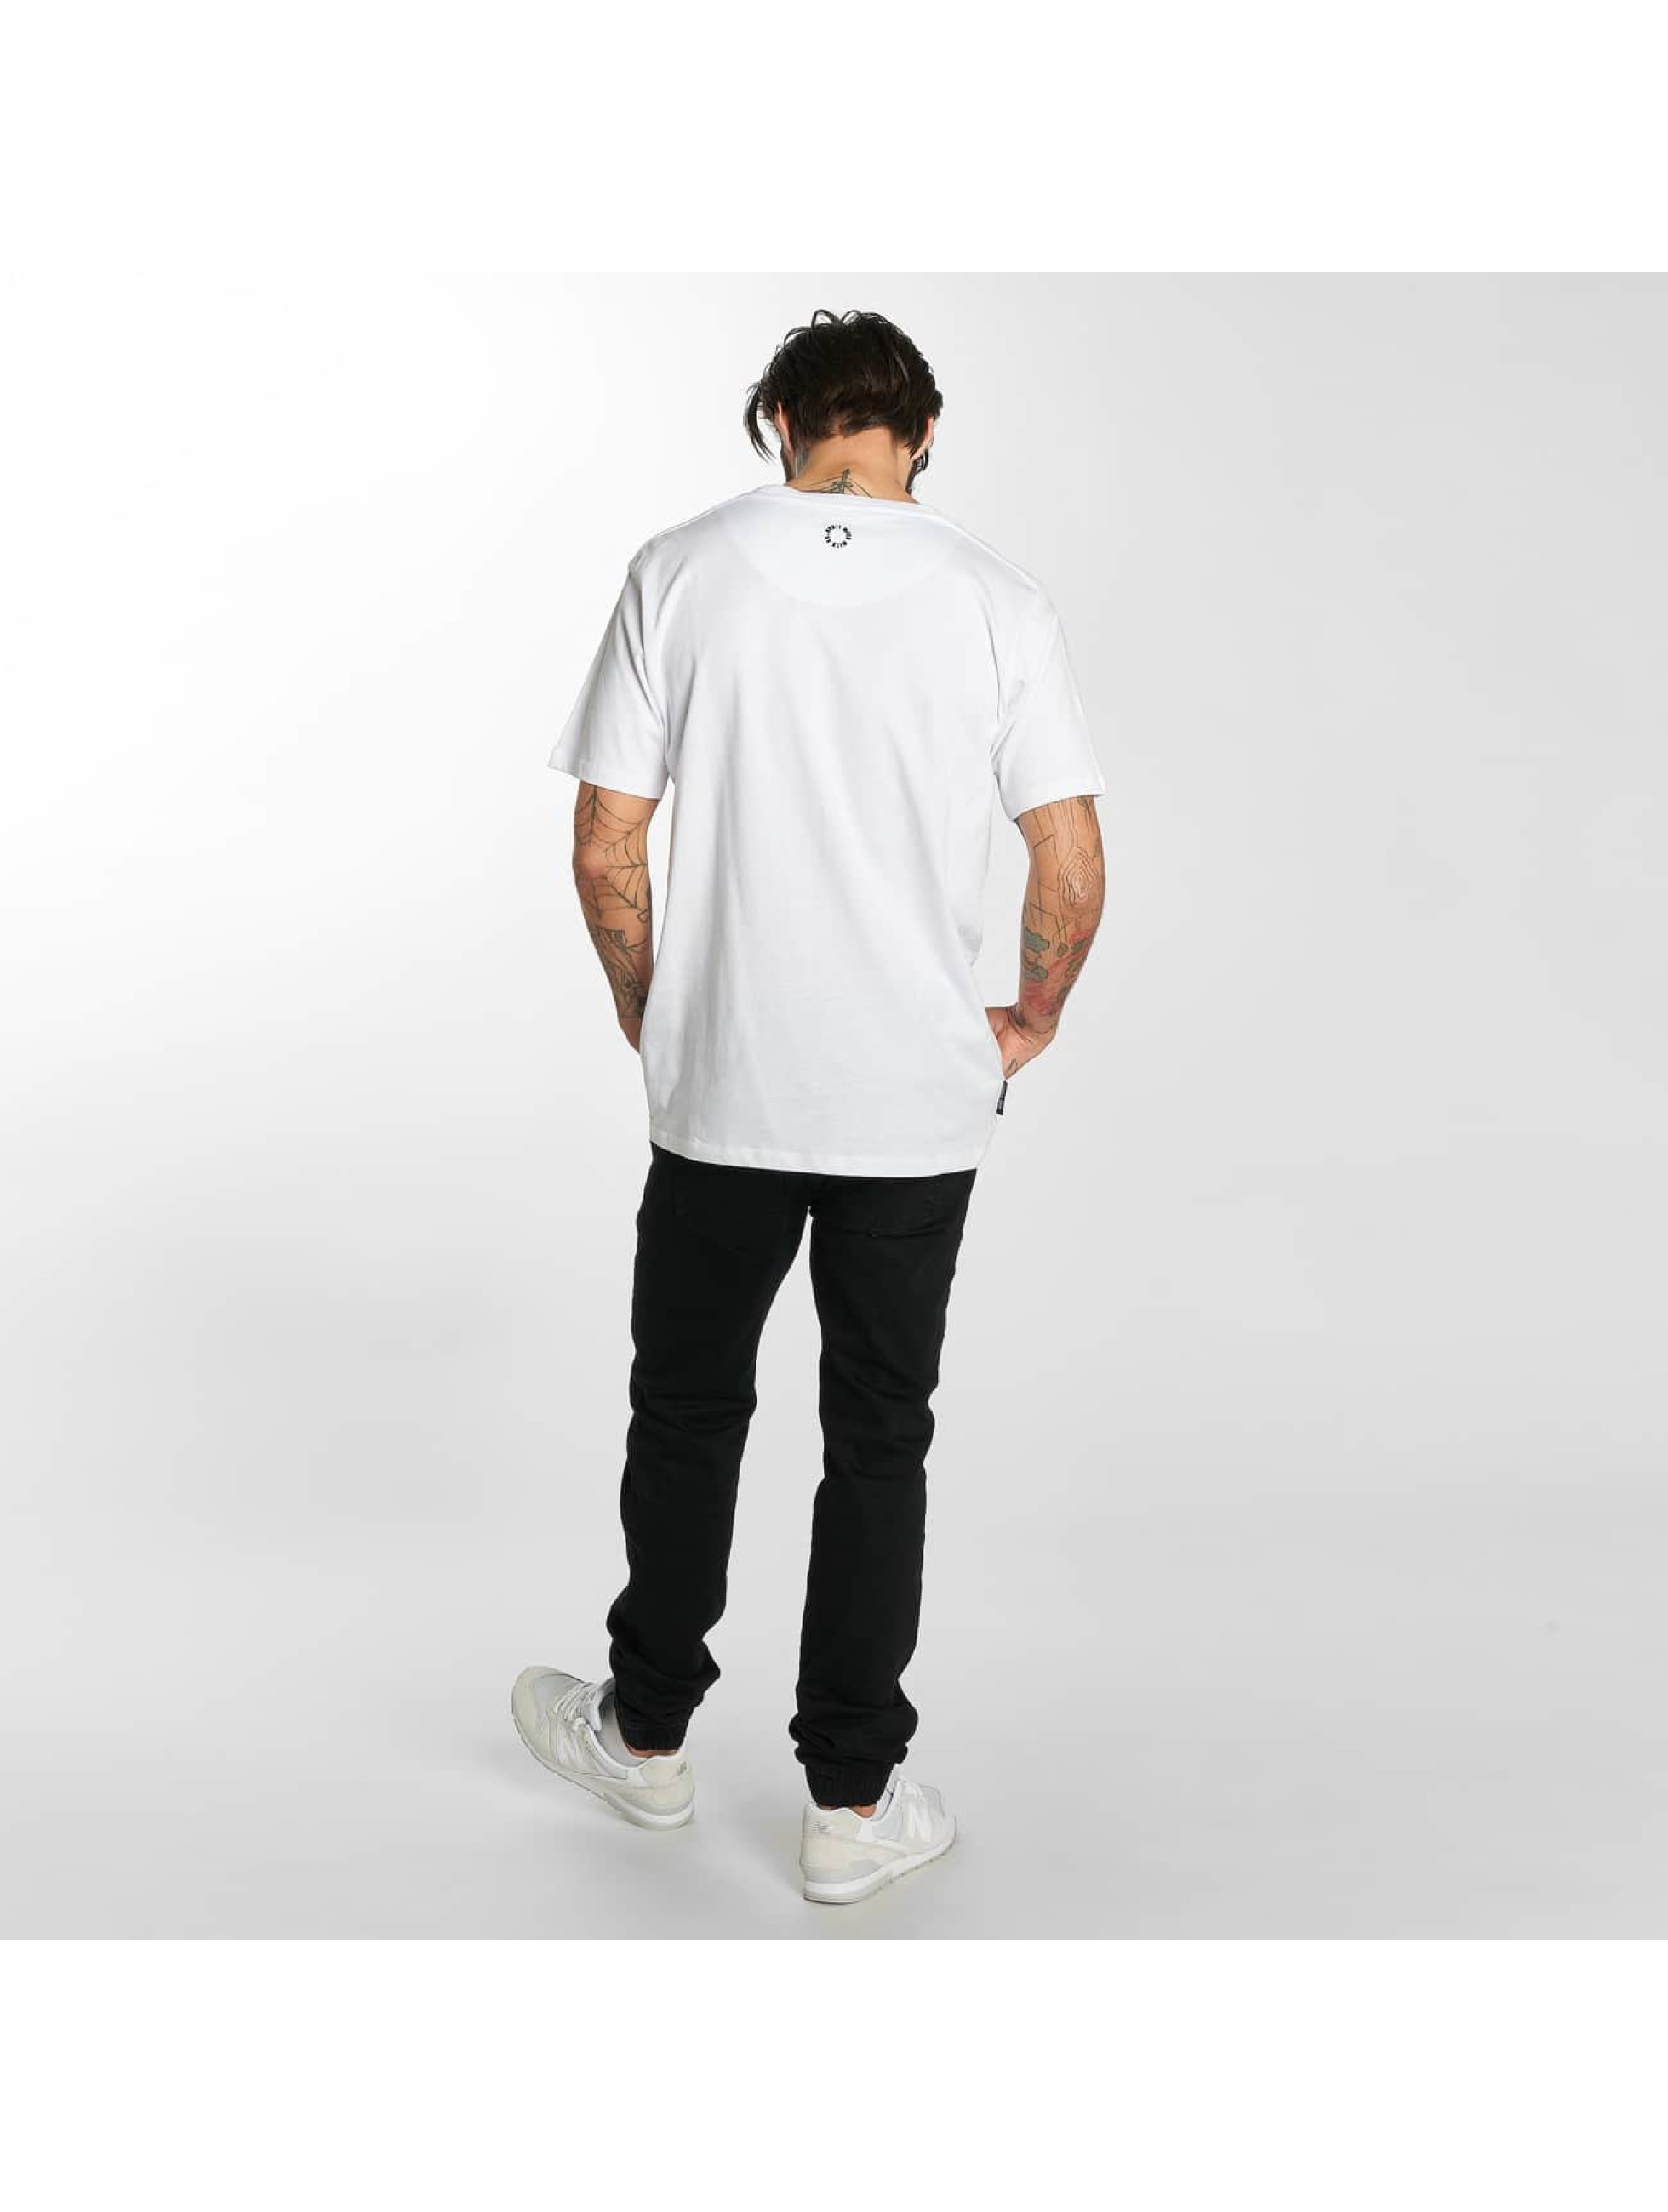 UNFAIR ATHLETICS T-Shirt Classic white